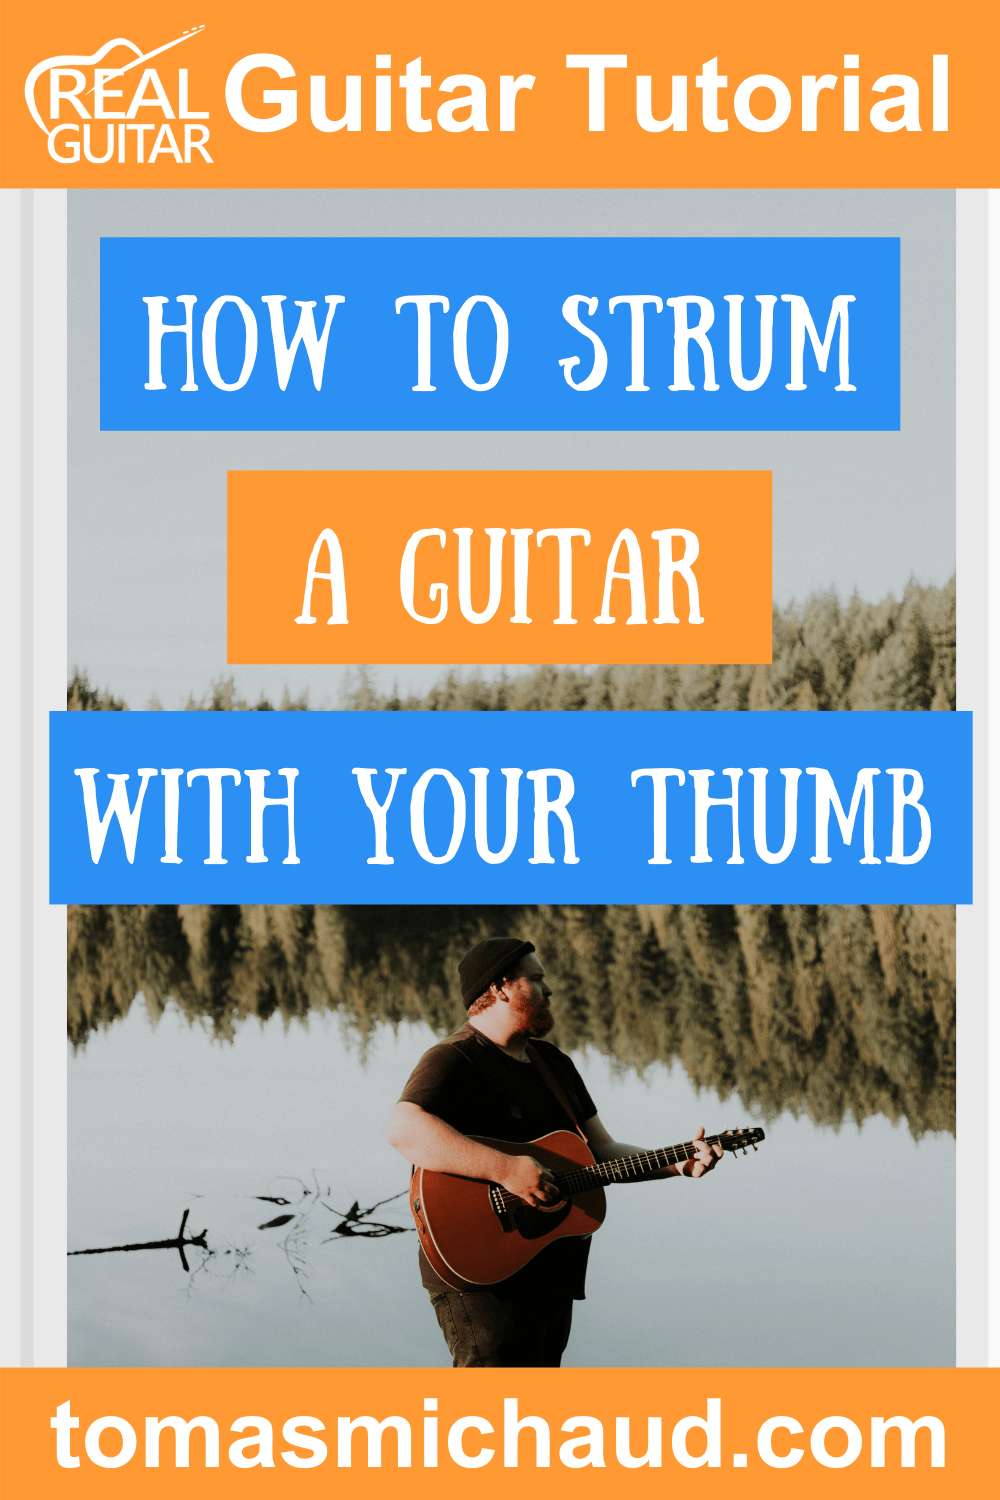 How To Strum A Guitar With Your Thumb